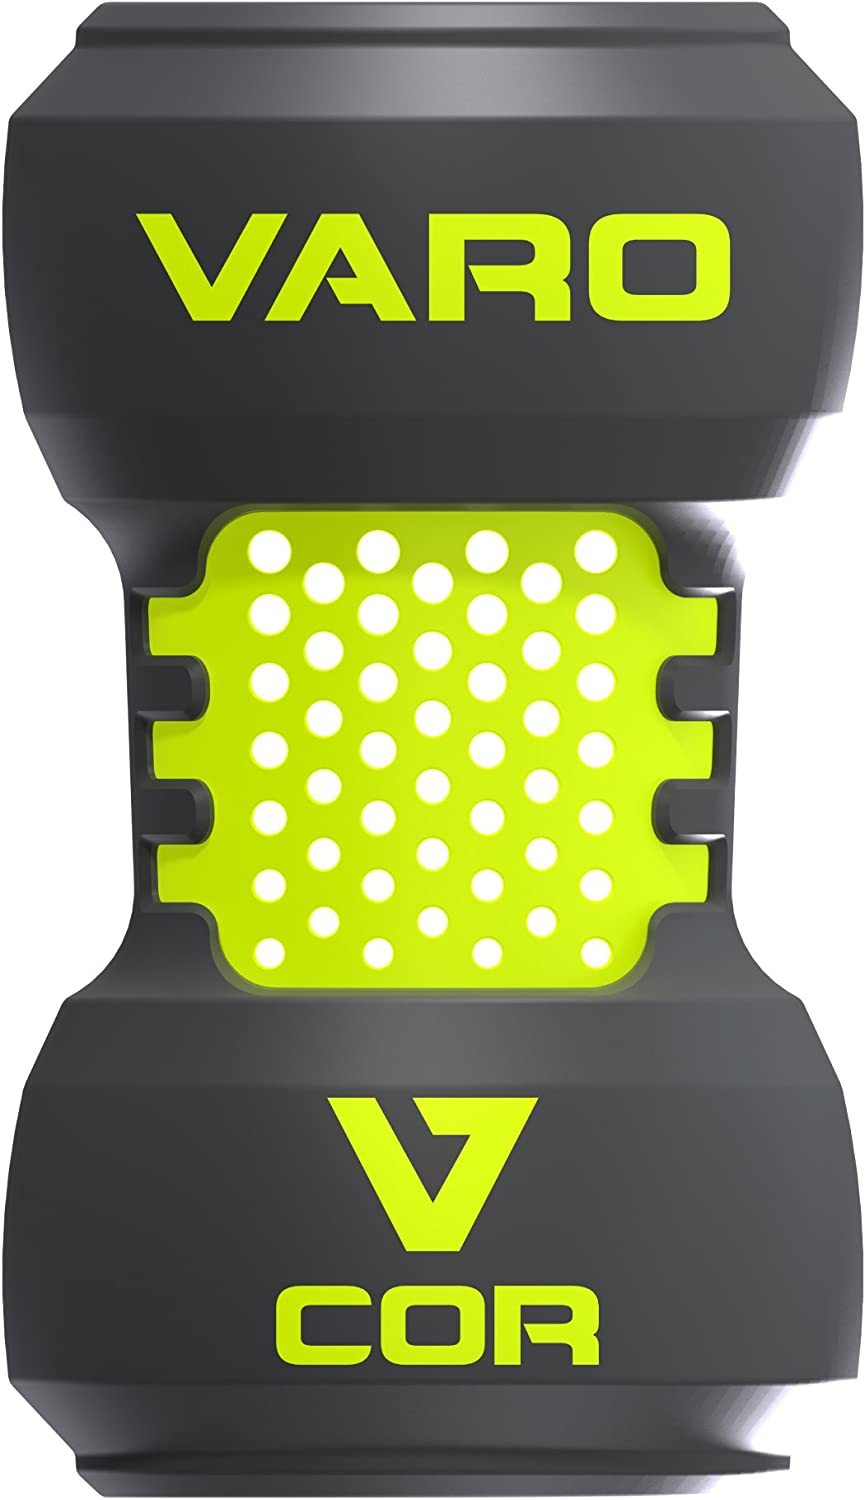 Varo COR Bat Training Weight, 20oz, for Baseball (MLB Authentic) - Classic Weight Feel - Improve Your On-Deck Swings and Power, Cushion Fit Eliminates Abrasion on the Bat